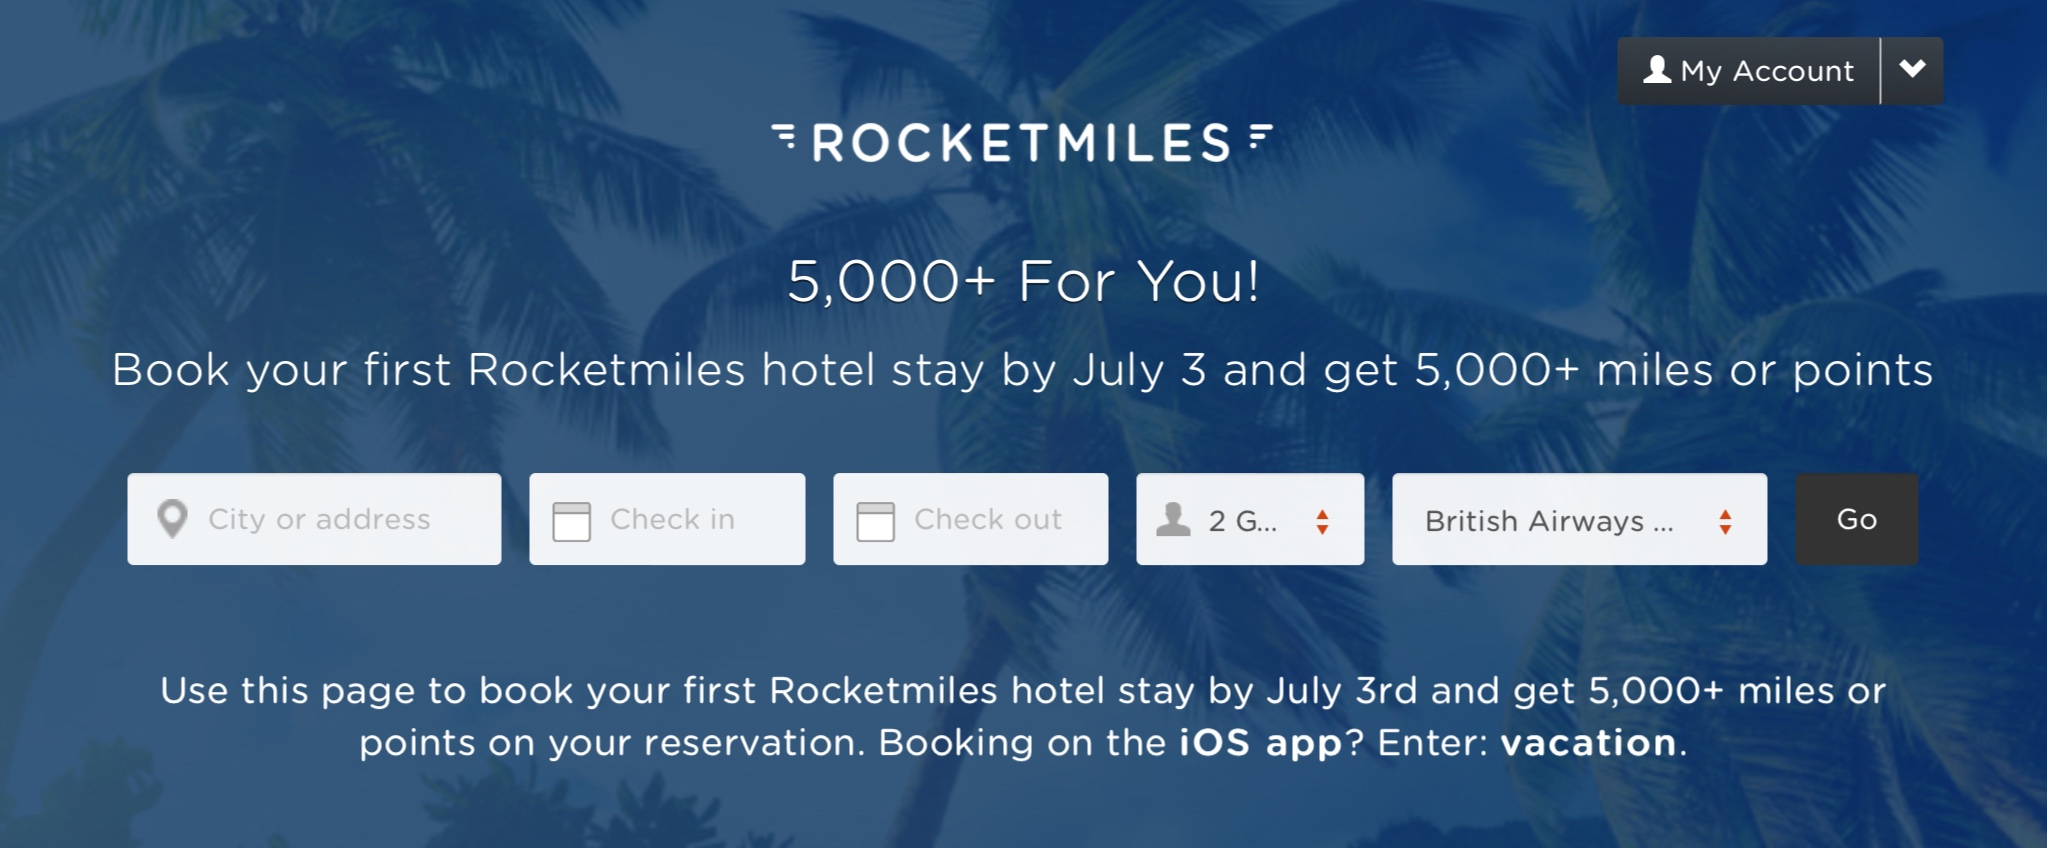 [Deal Gone]Hotels can get at least 5000 air miles